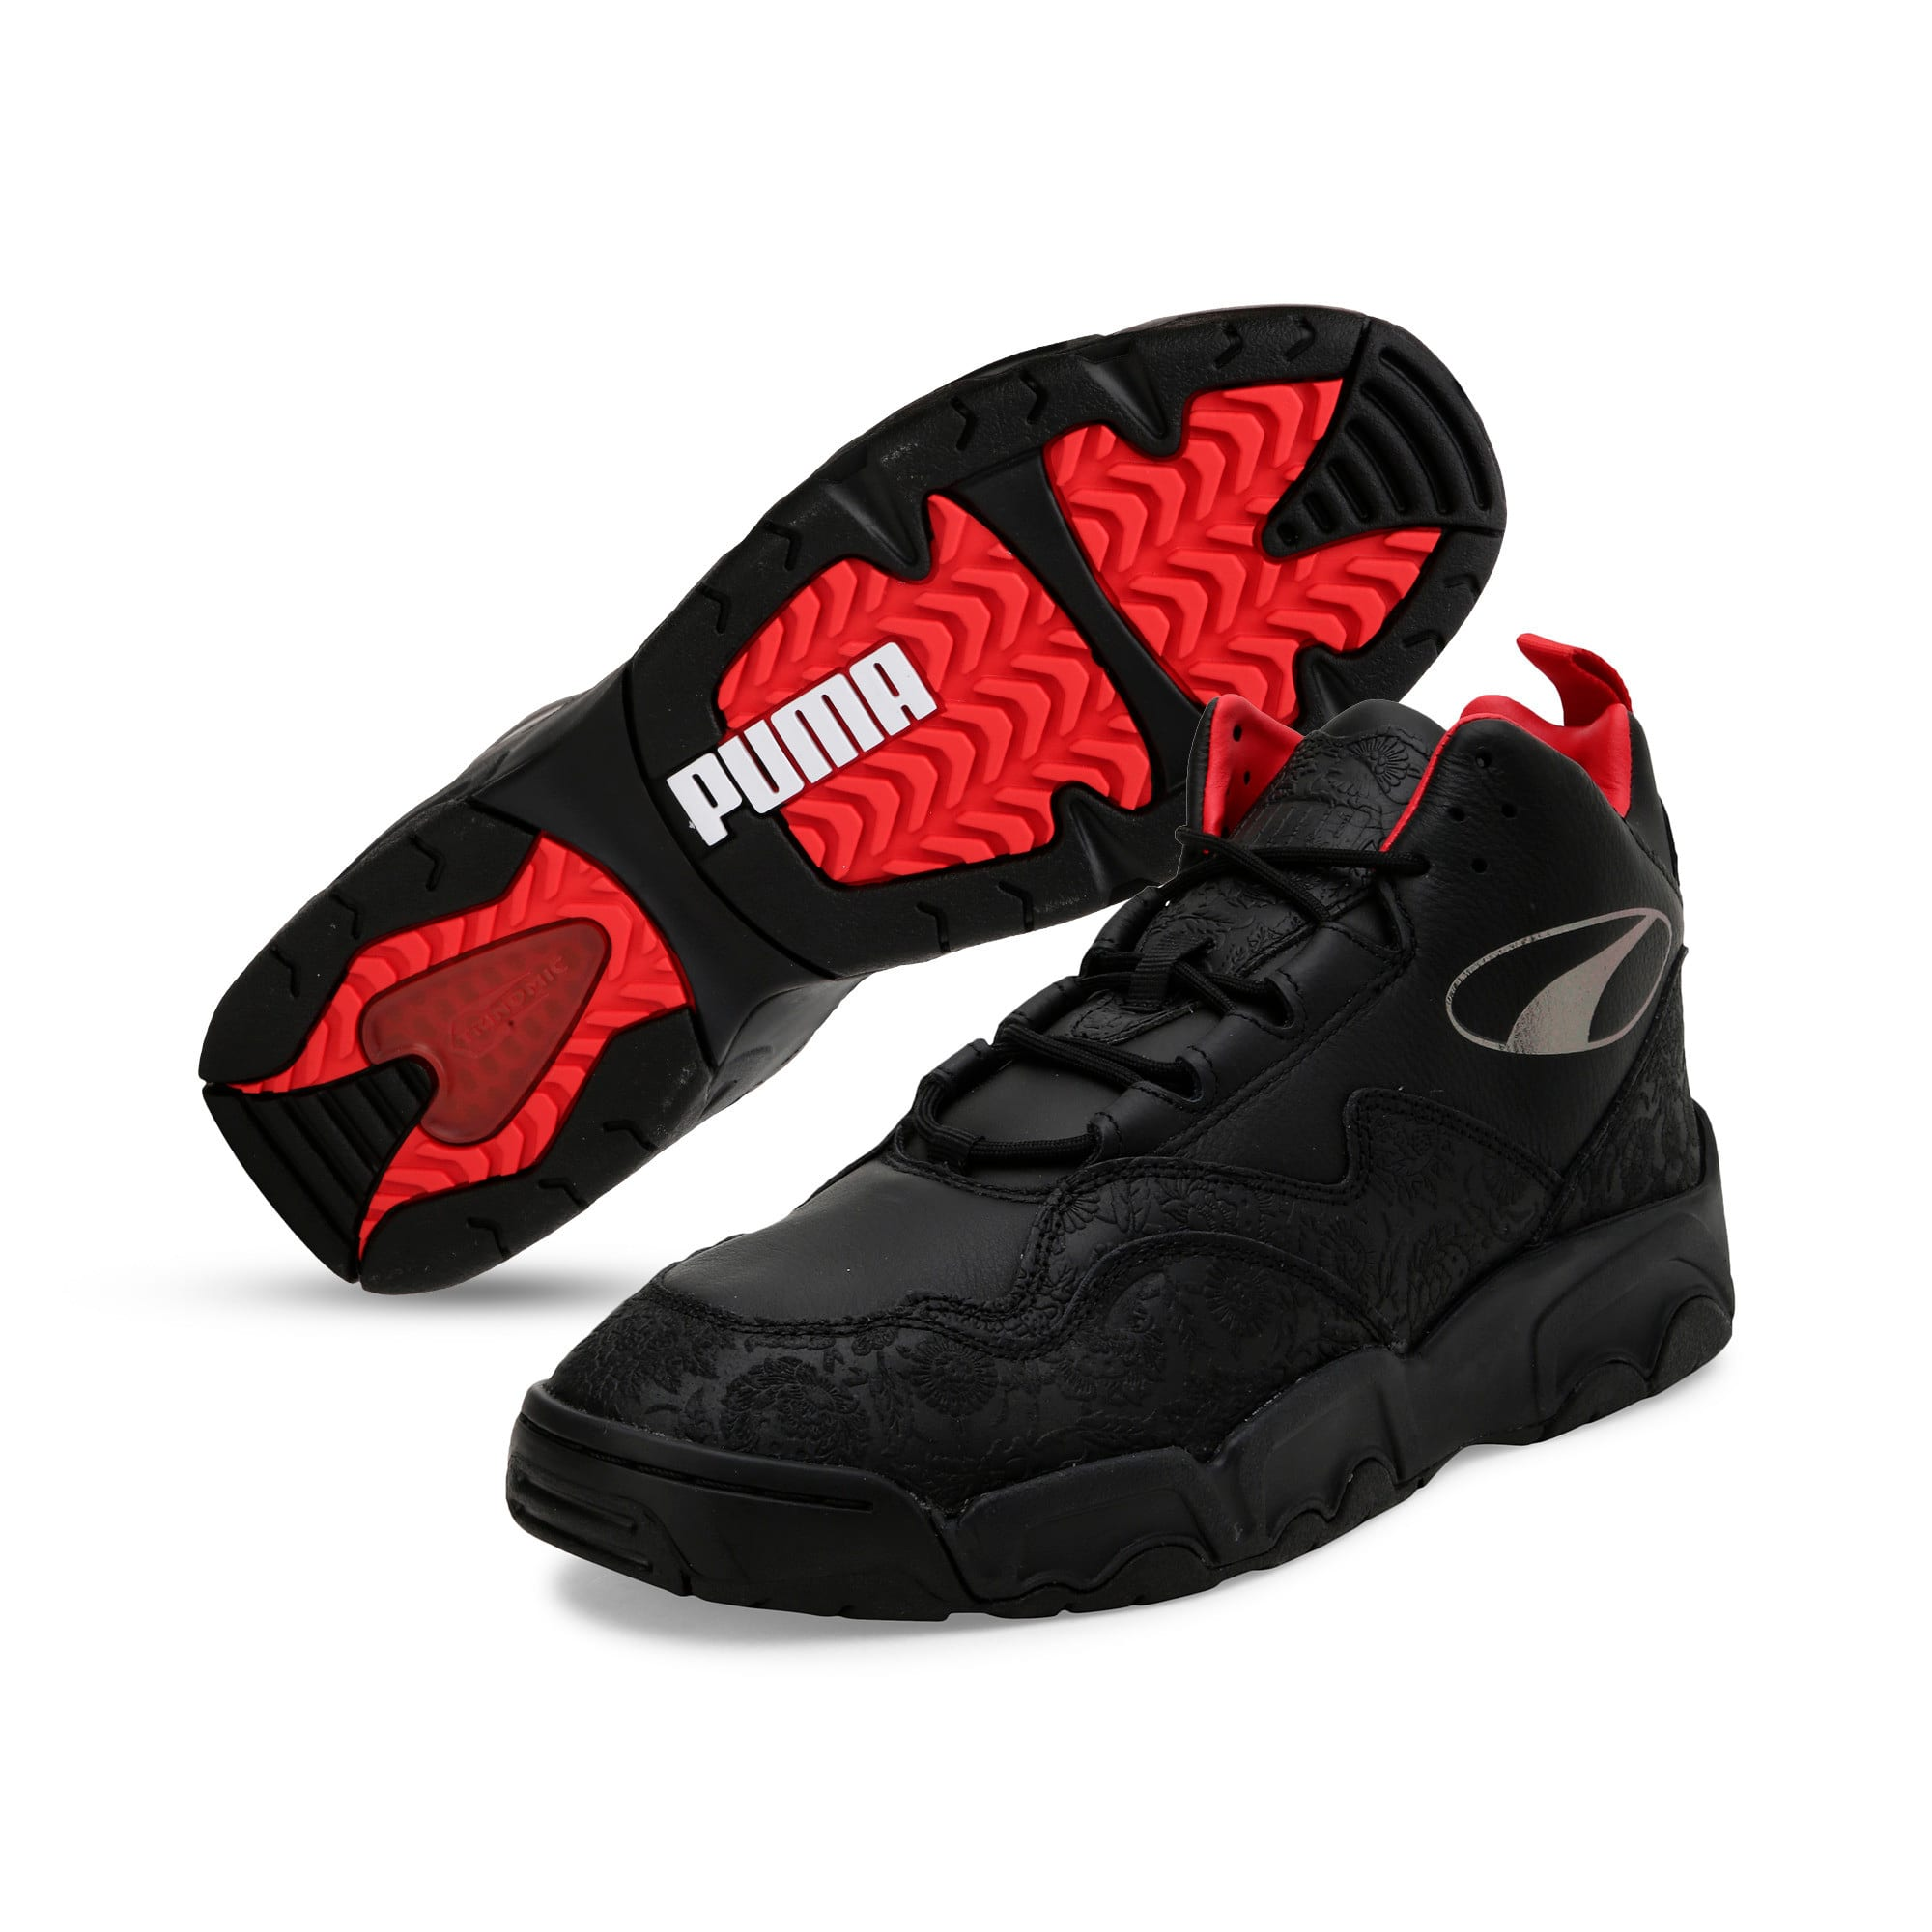 Thumbnail 3 of Source Mid World Cup Trainers, P Blk-Bronze-High Risk Red, medium-IND